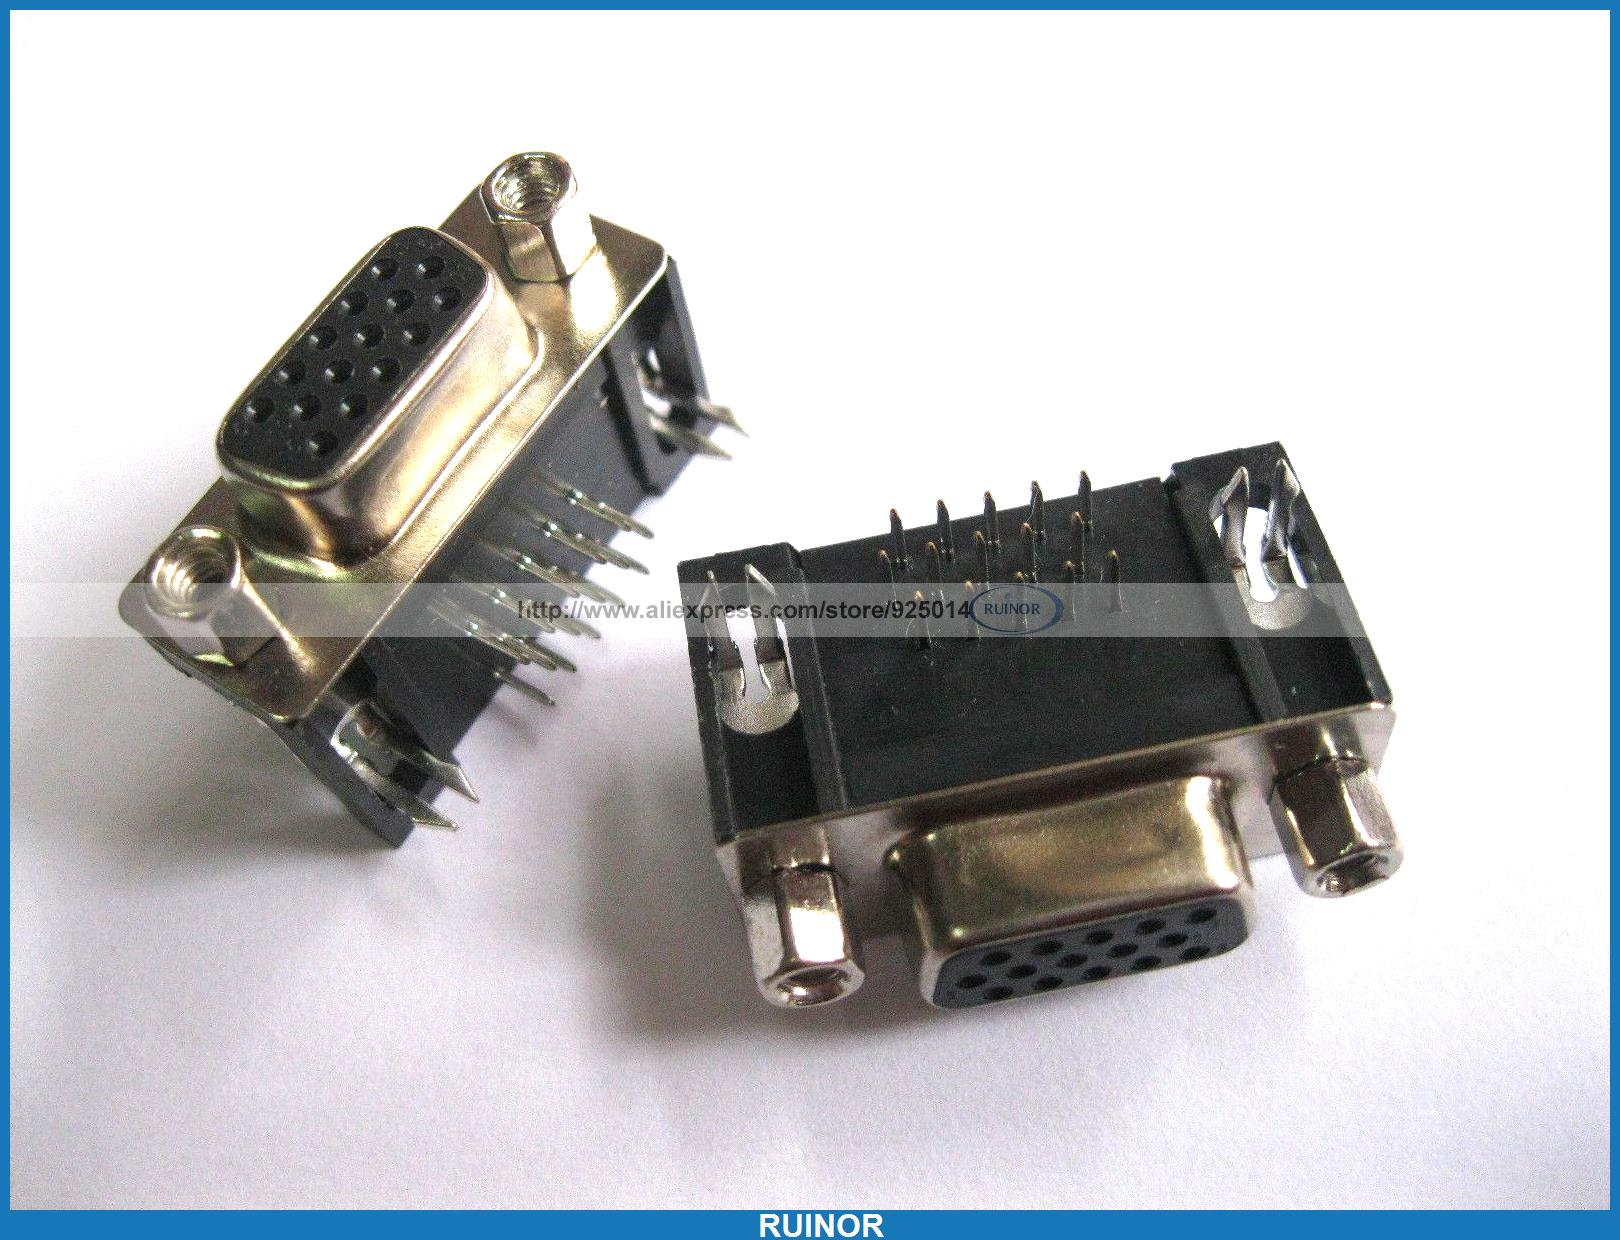 24 Pcs D Sub 15 Pin Female Connector Right Angle 3 Rows <br><br>Aliexpress